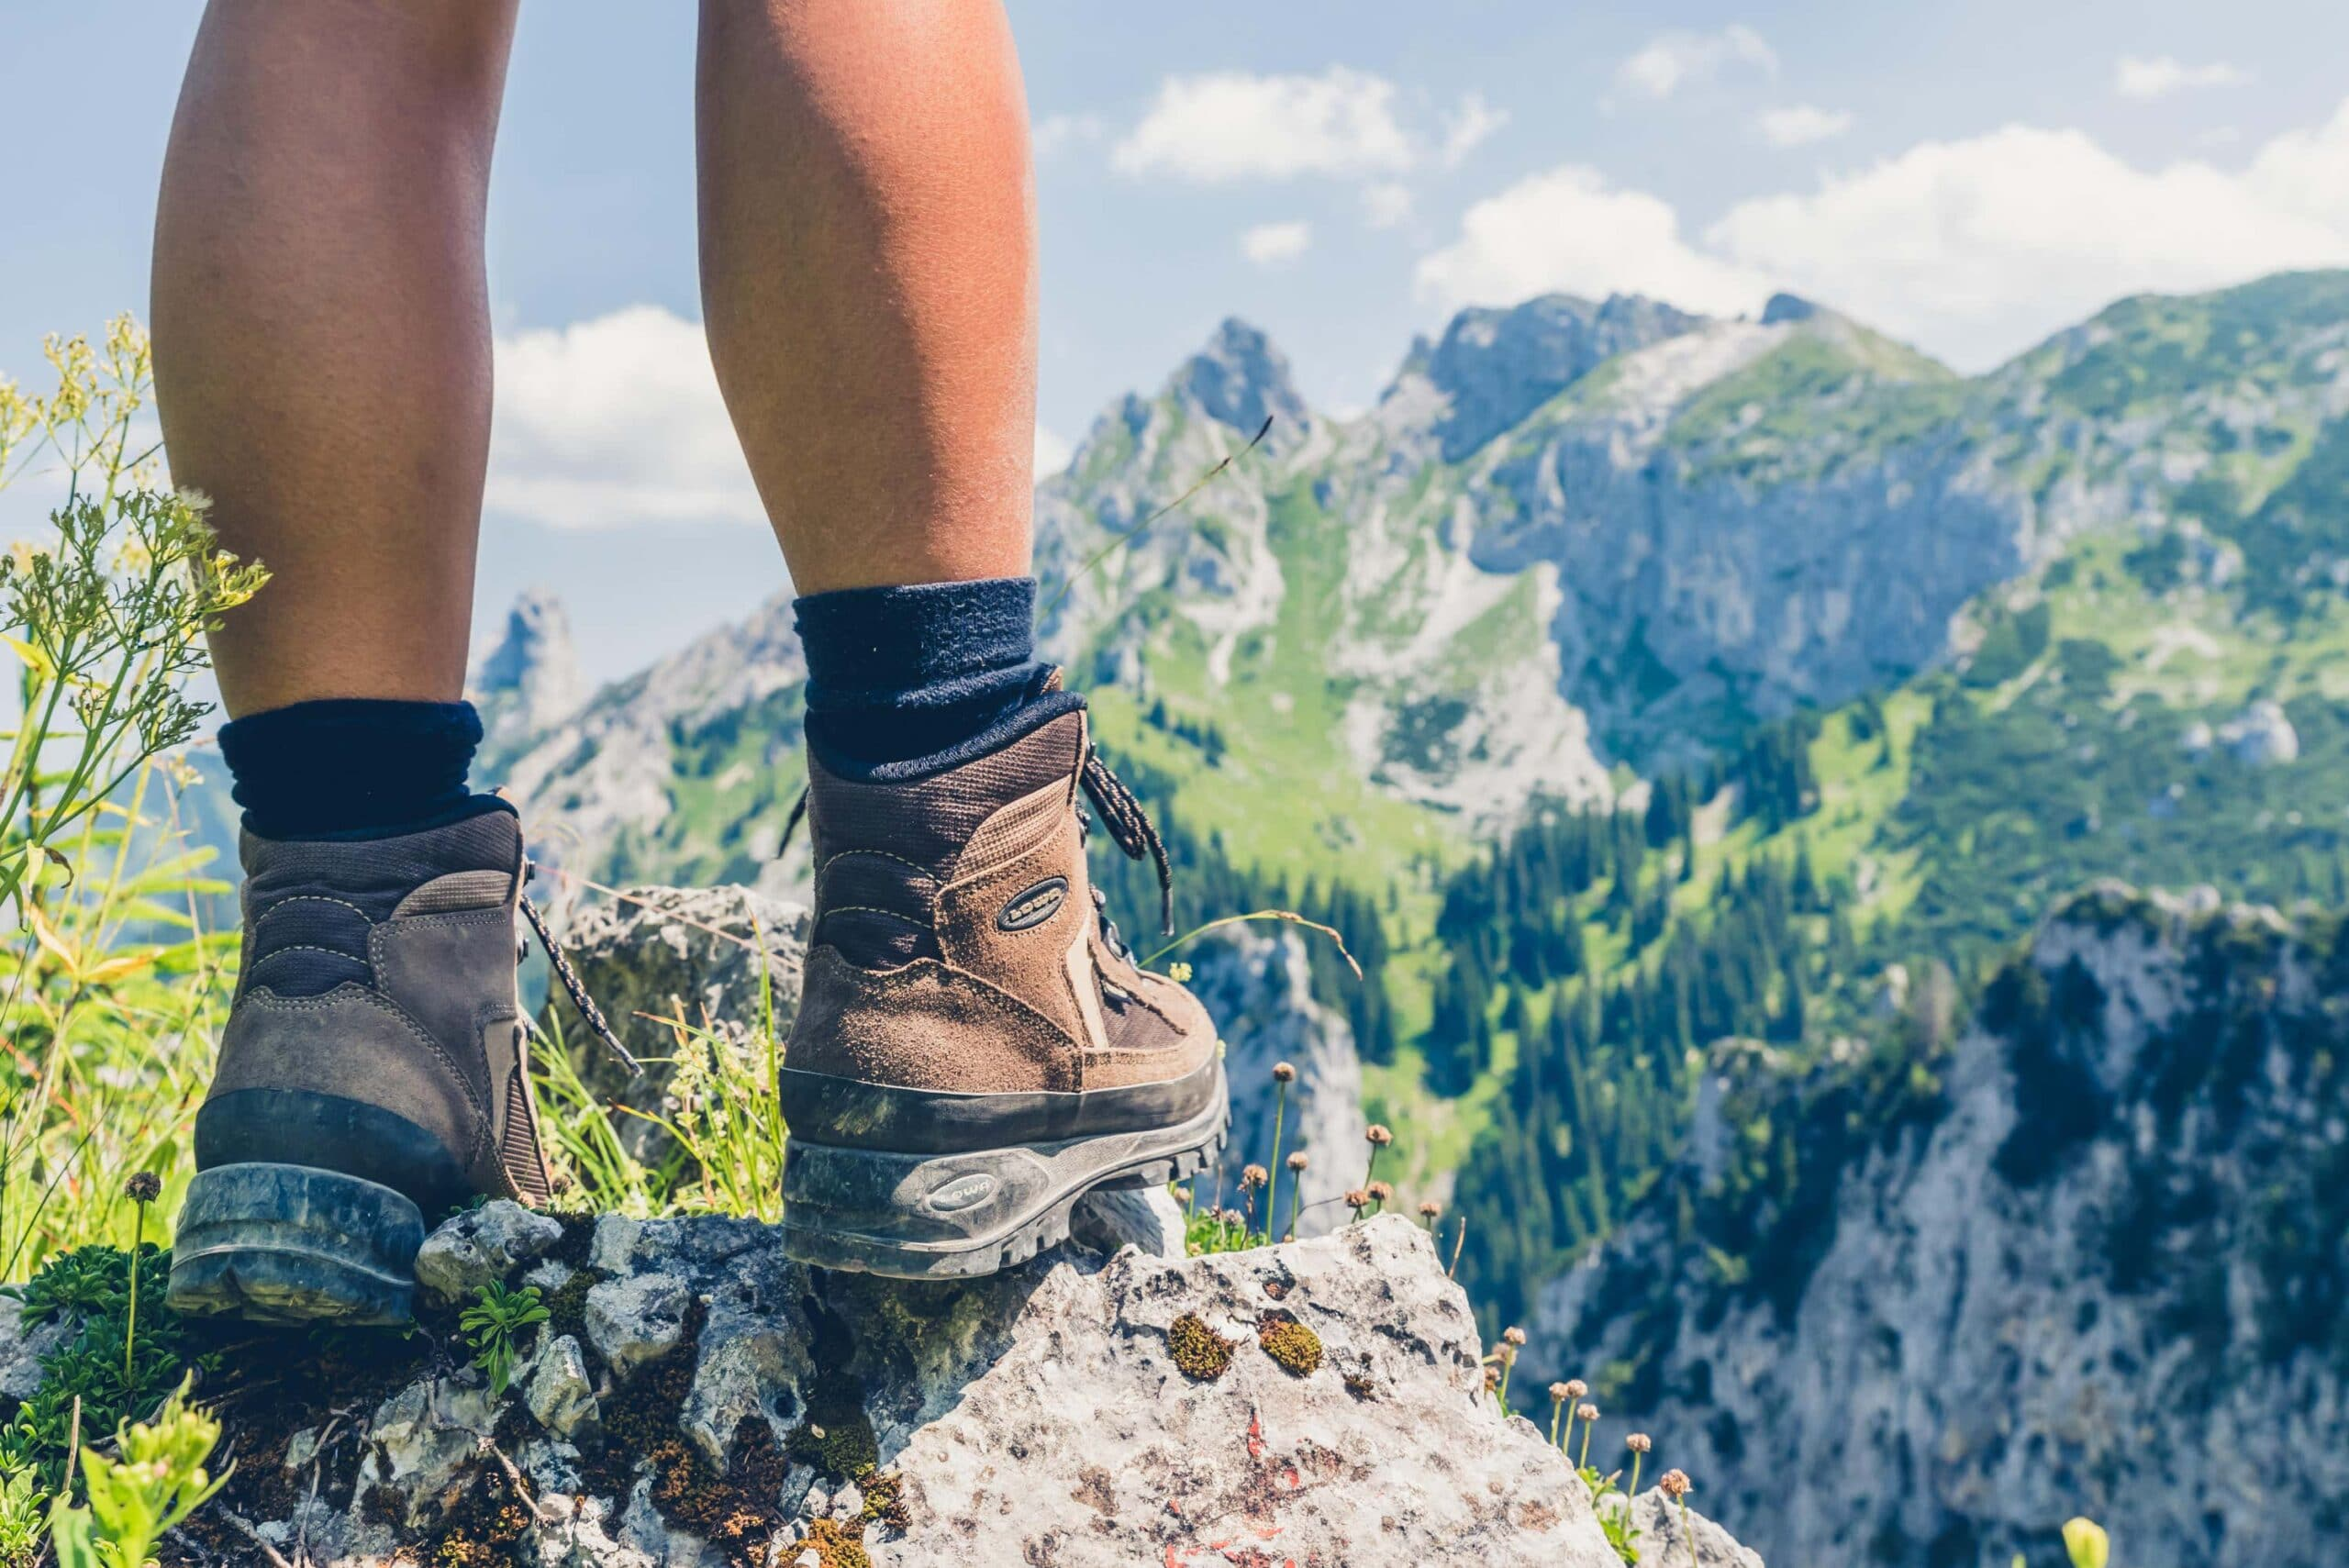 Why Adventure Is Great For Our Wellbeing